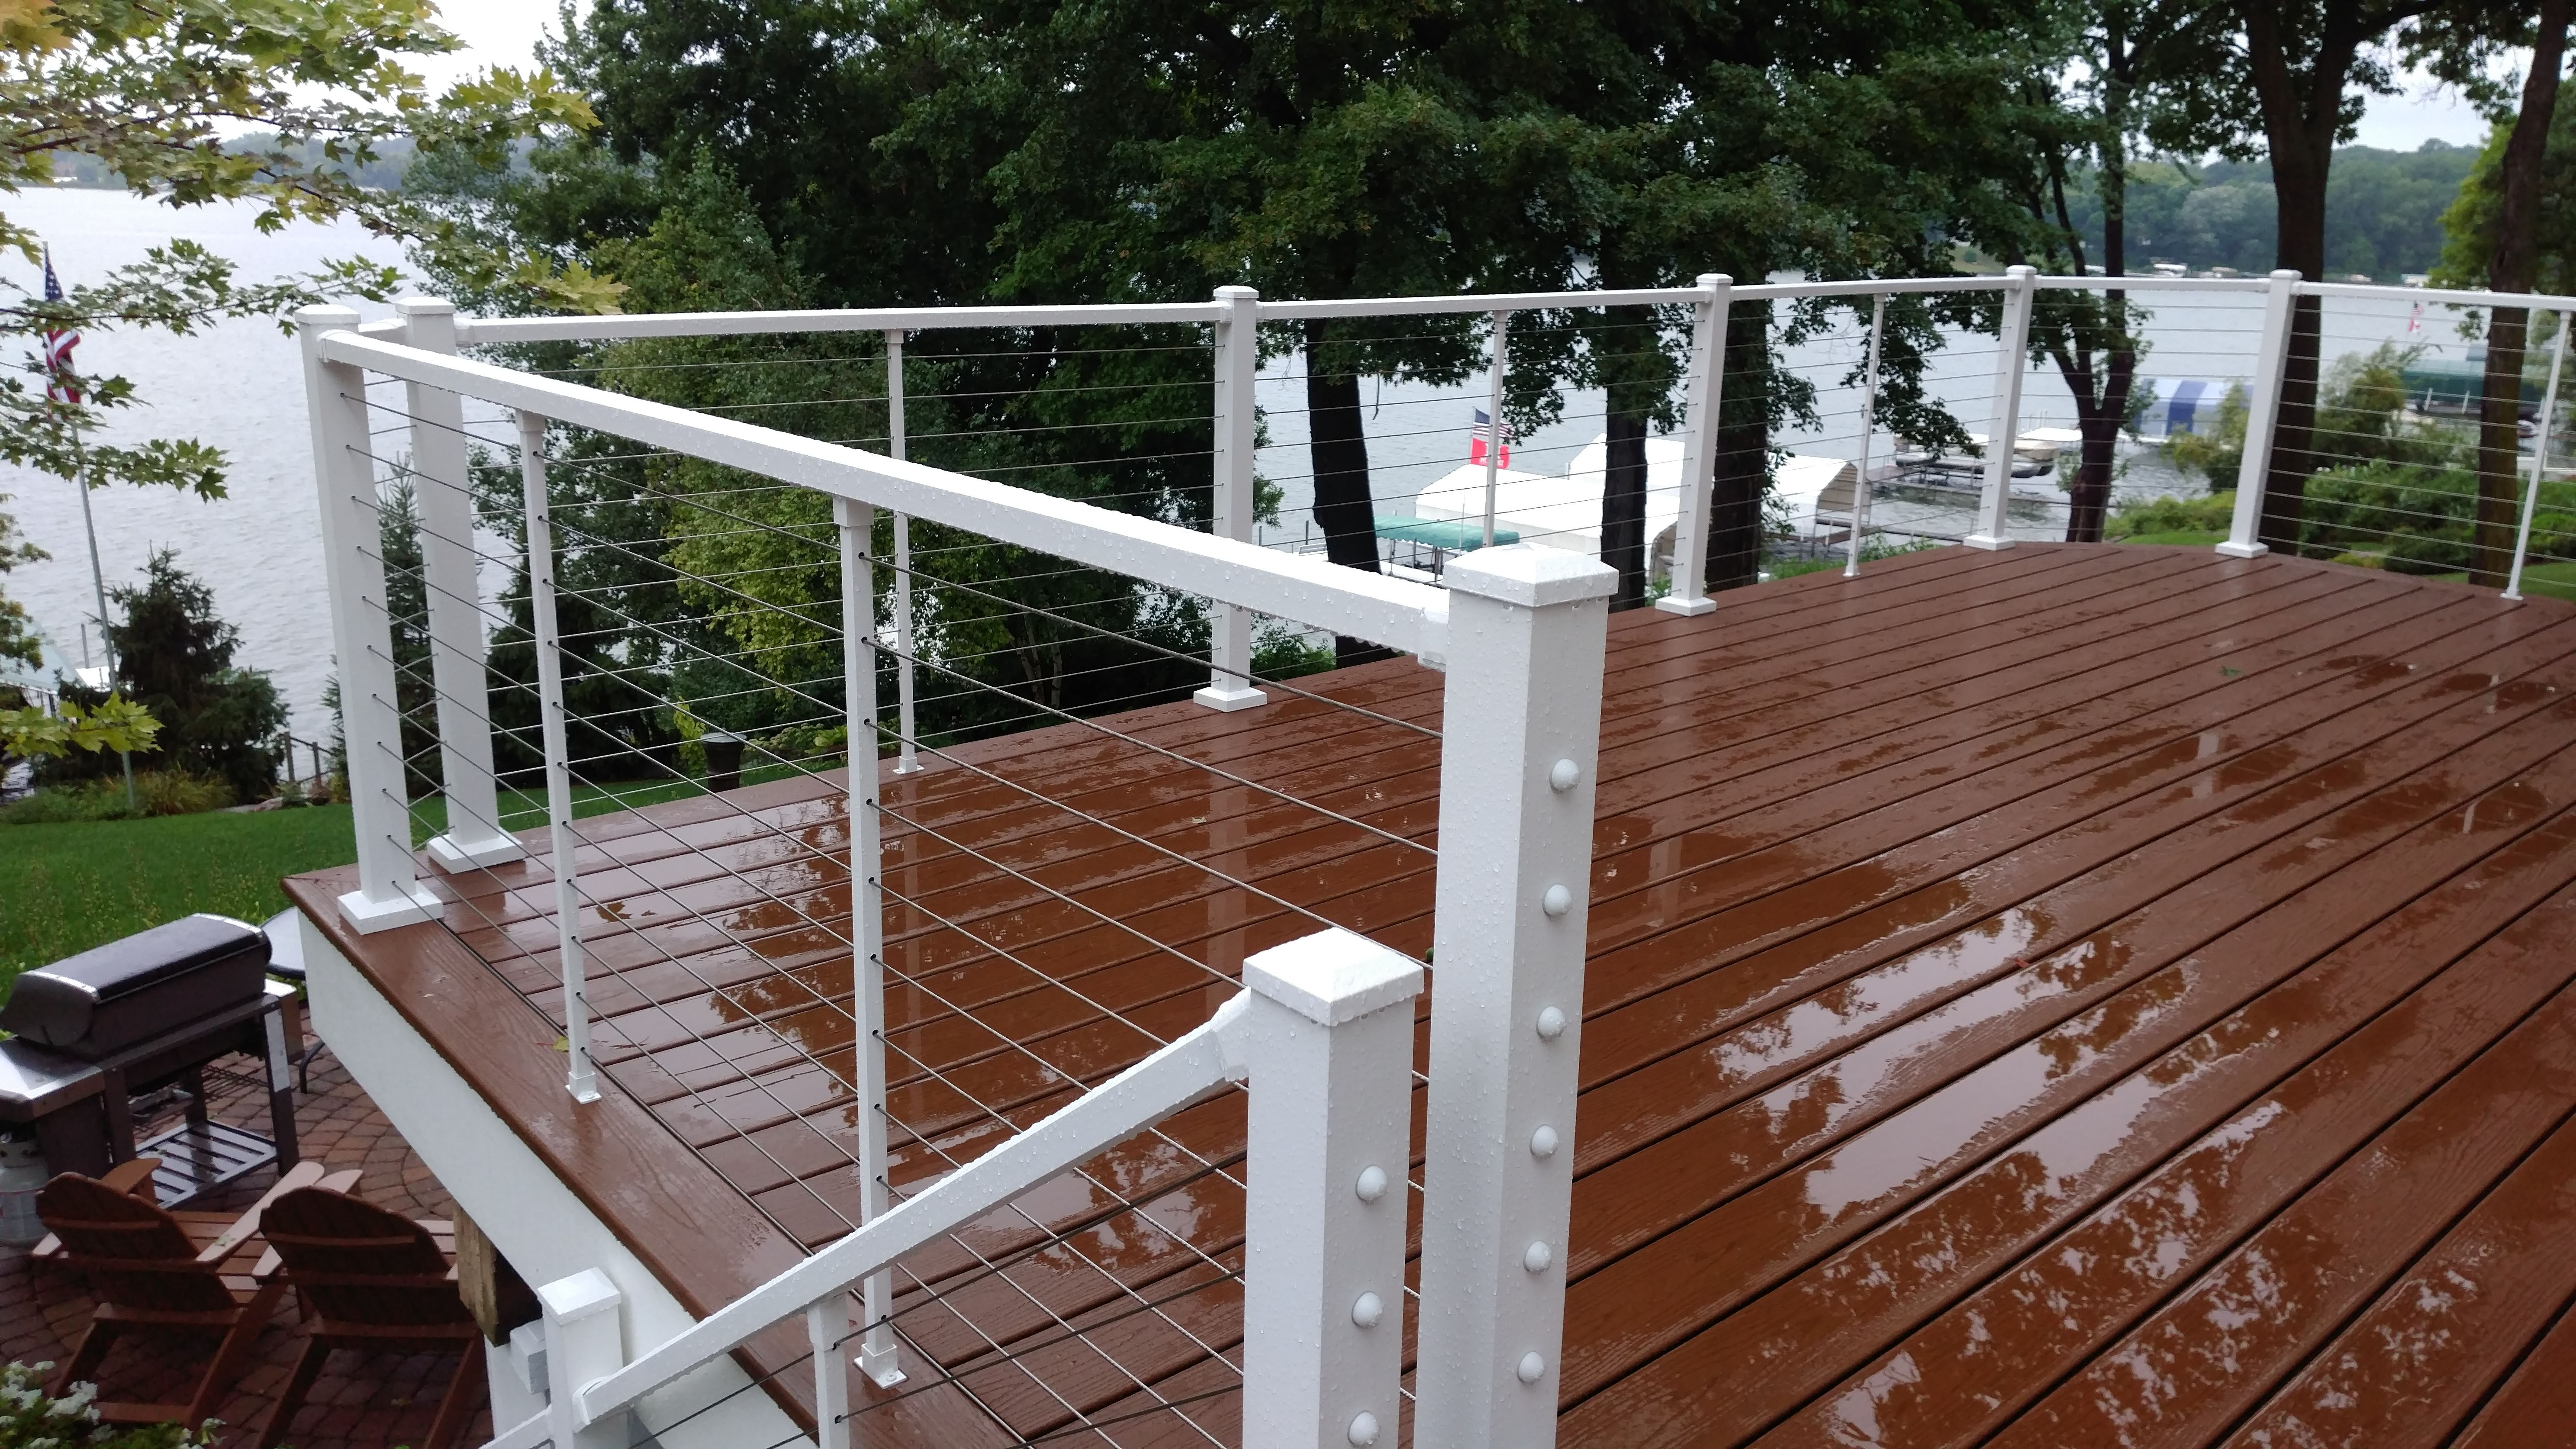 Skyline Cable Railing Is A Durable And Attractive Top Rail